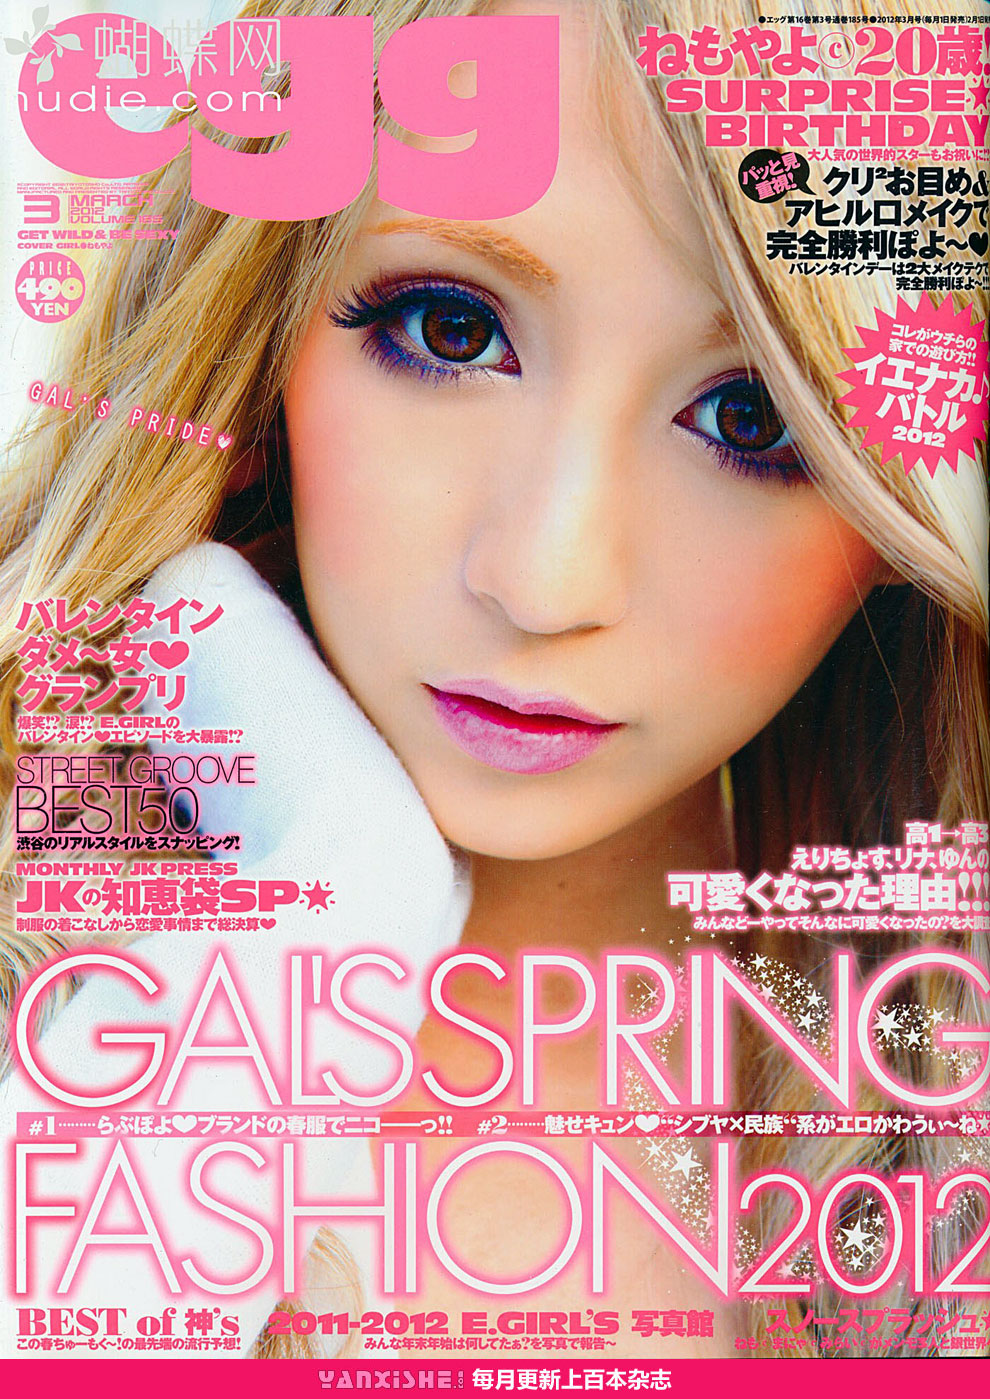 egg magazine scans march 2012